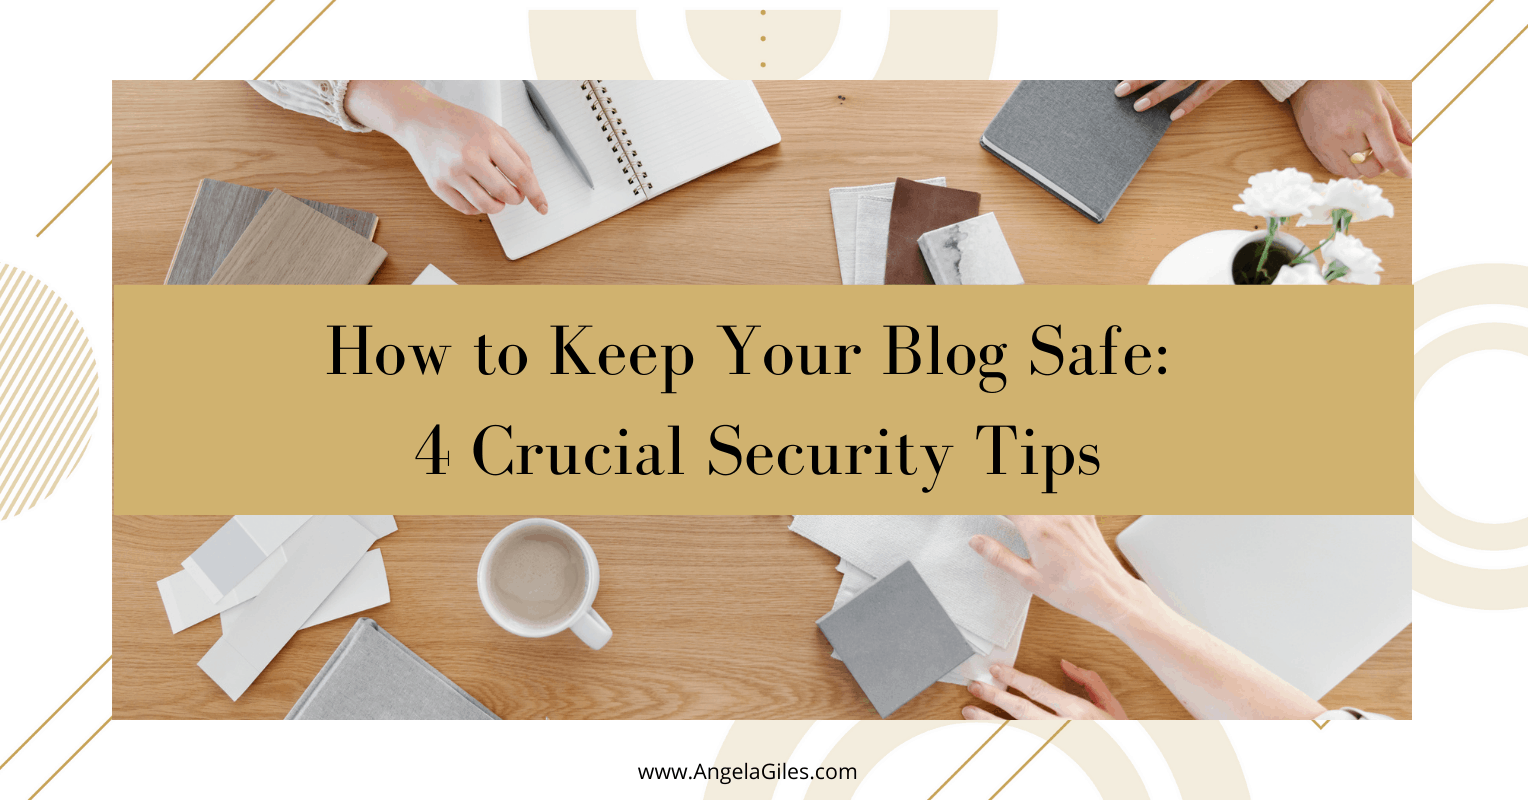 How to Keep Your Blog Safe: 4 Crucial Security Tips